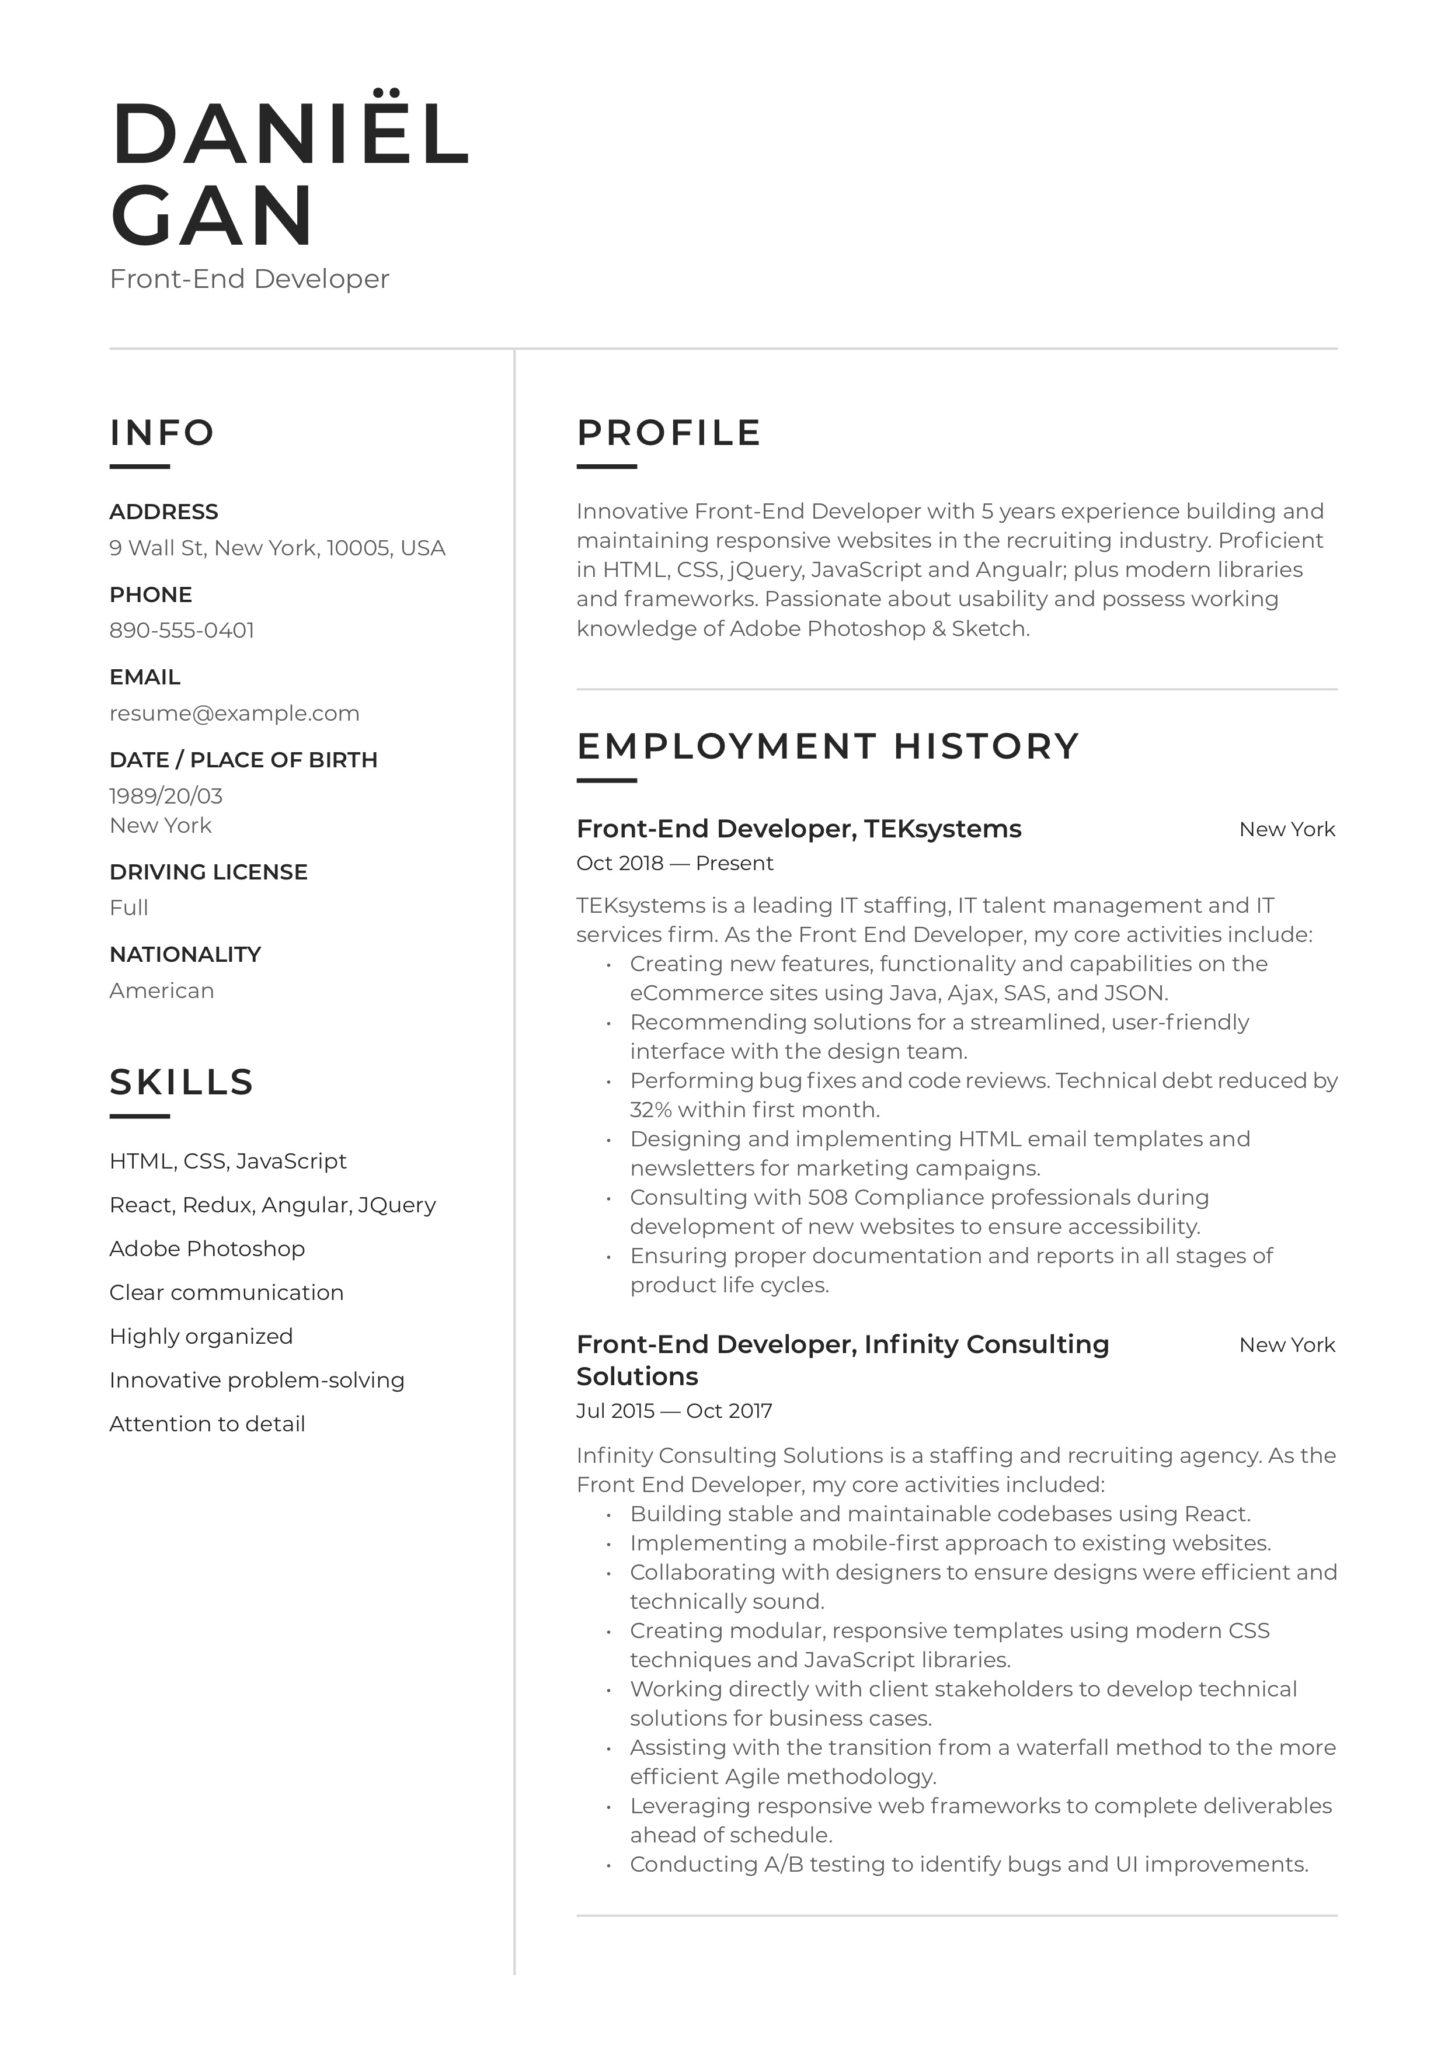 20 Front End Developer Resume Examples Guide Pdf 2020